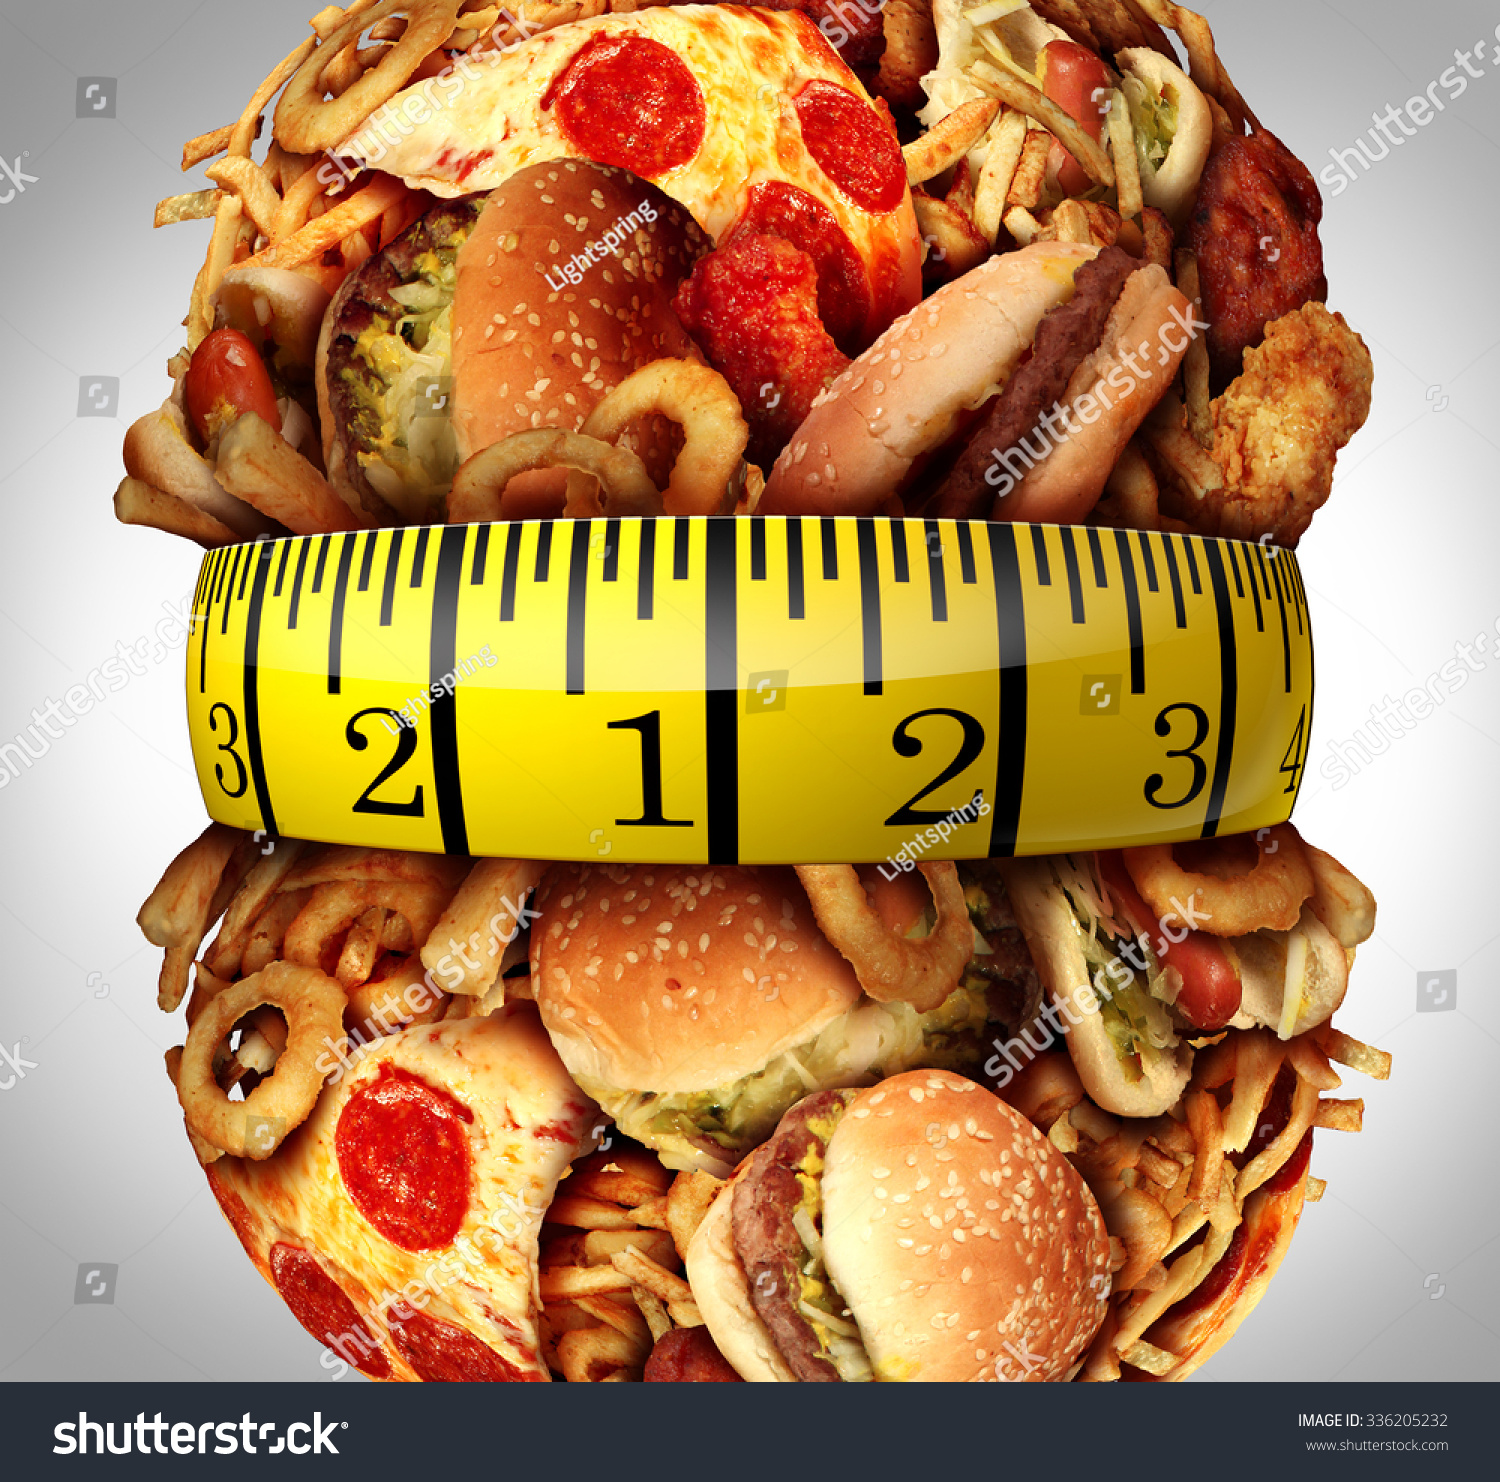 the causes and effects of fast food to our bodies Causes and effects of fast food consumption  fast food can cause a lot of problems in our bodies,  the effects of fast food on your body while a quick,.